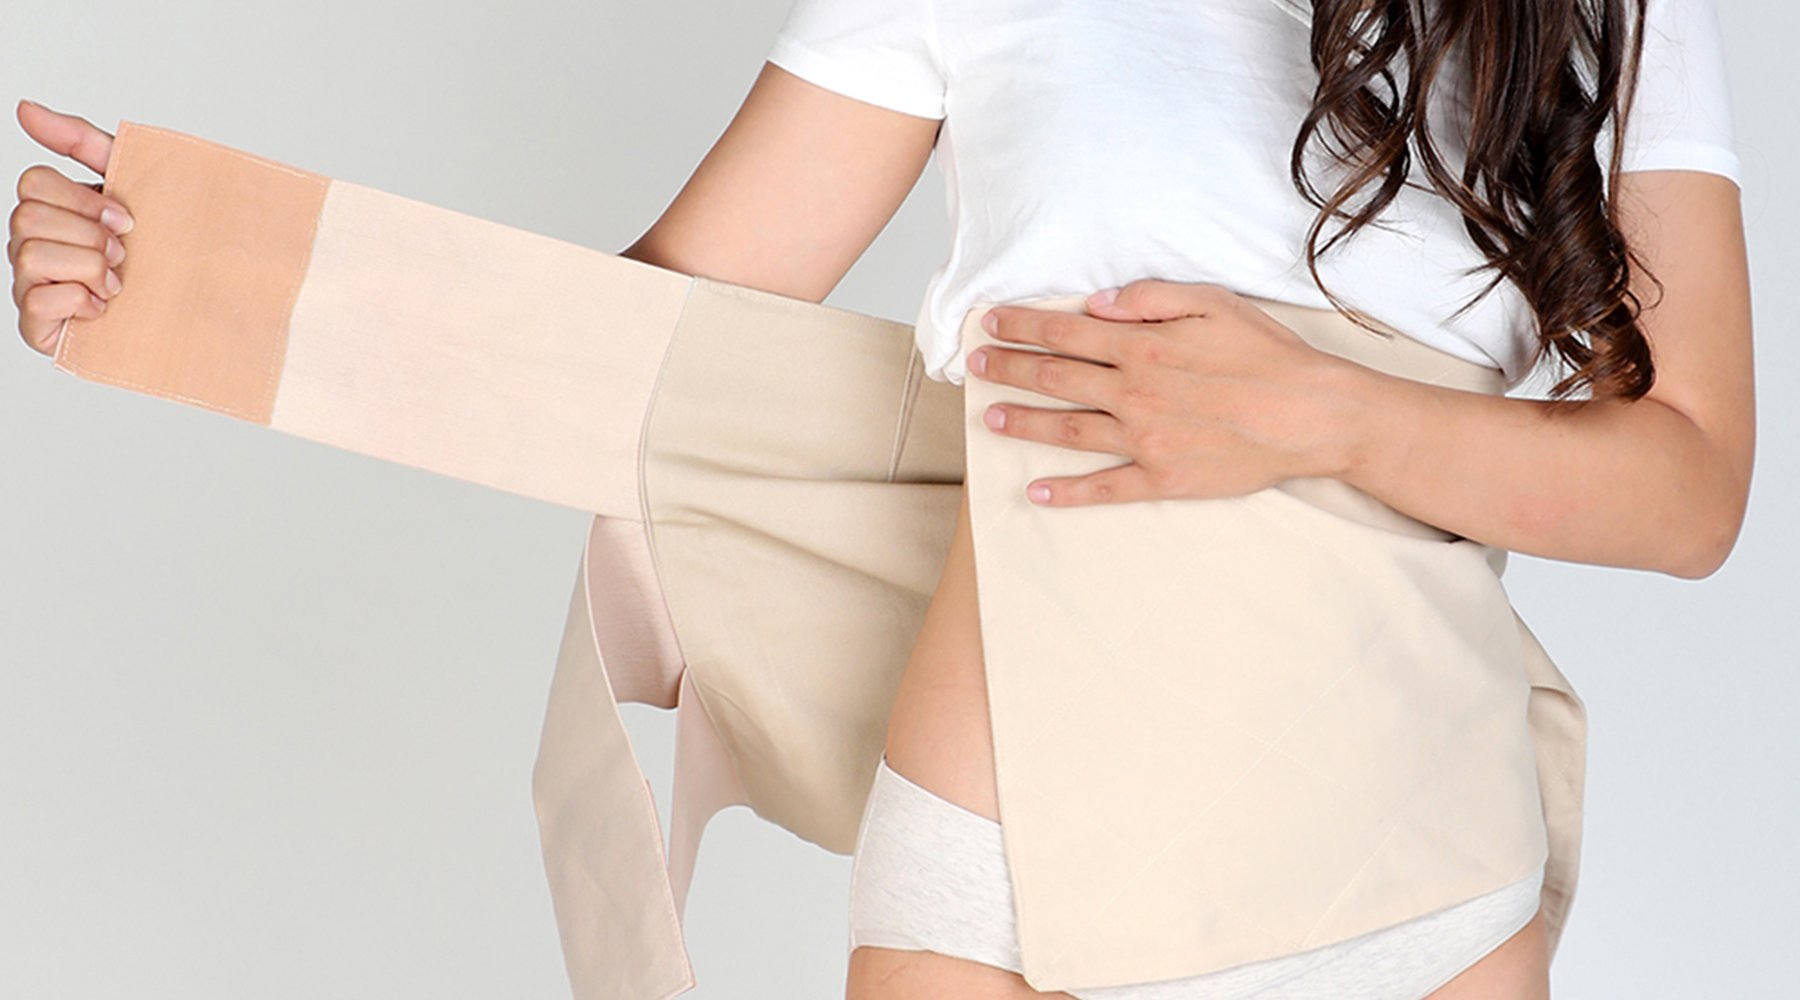 All You Need to Know About the Postpartum Binder